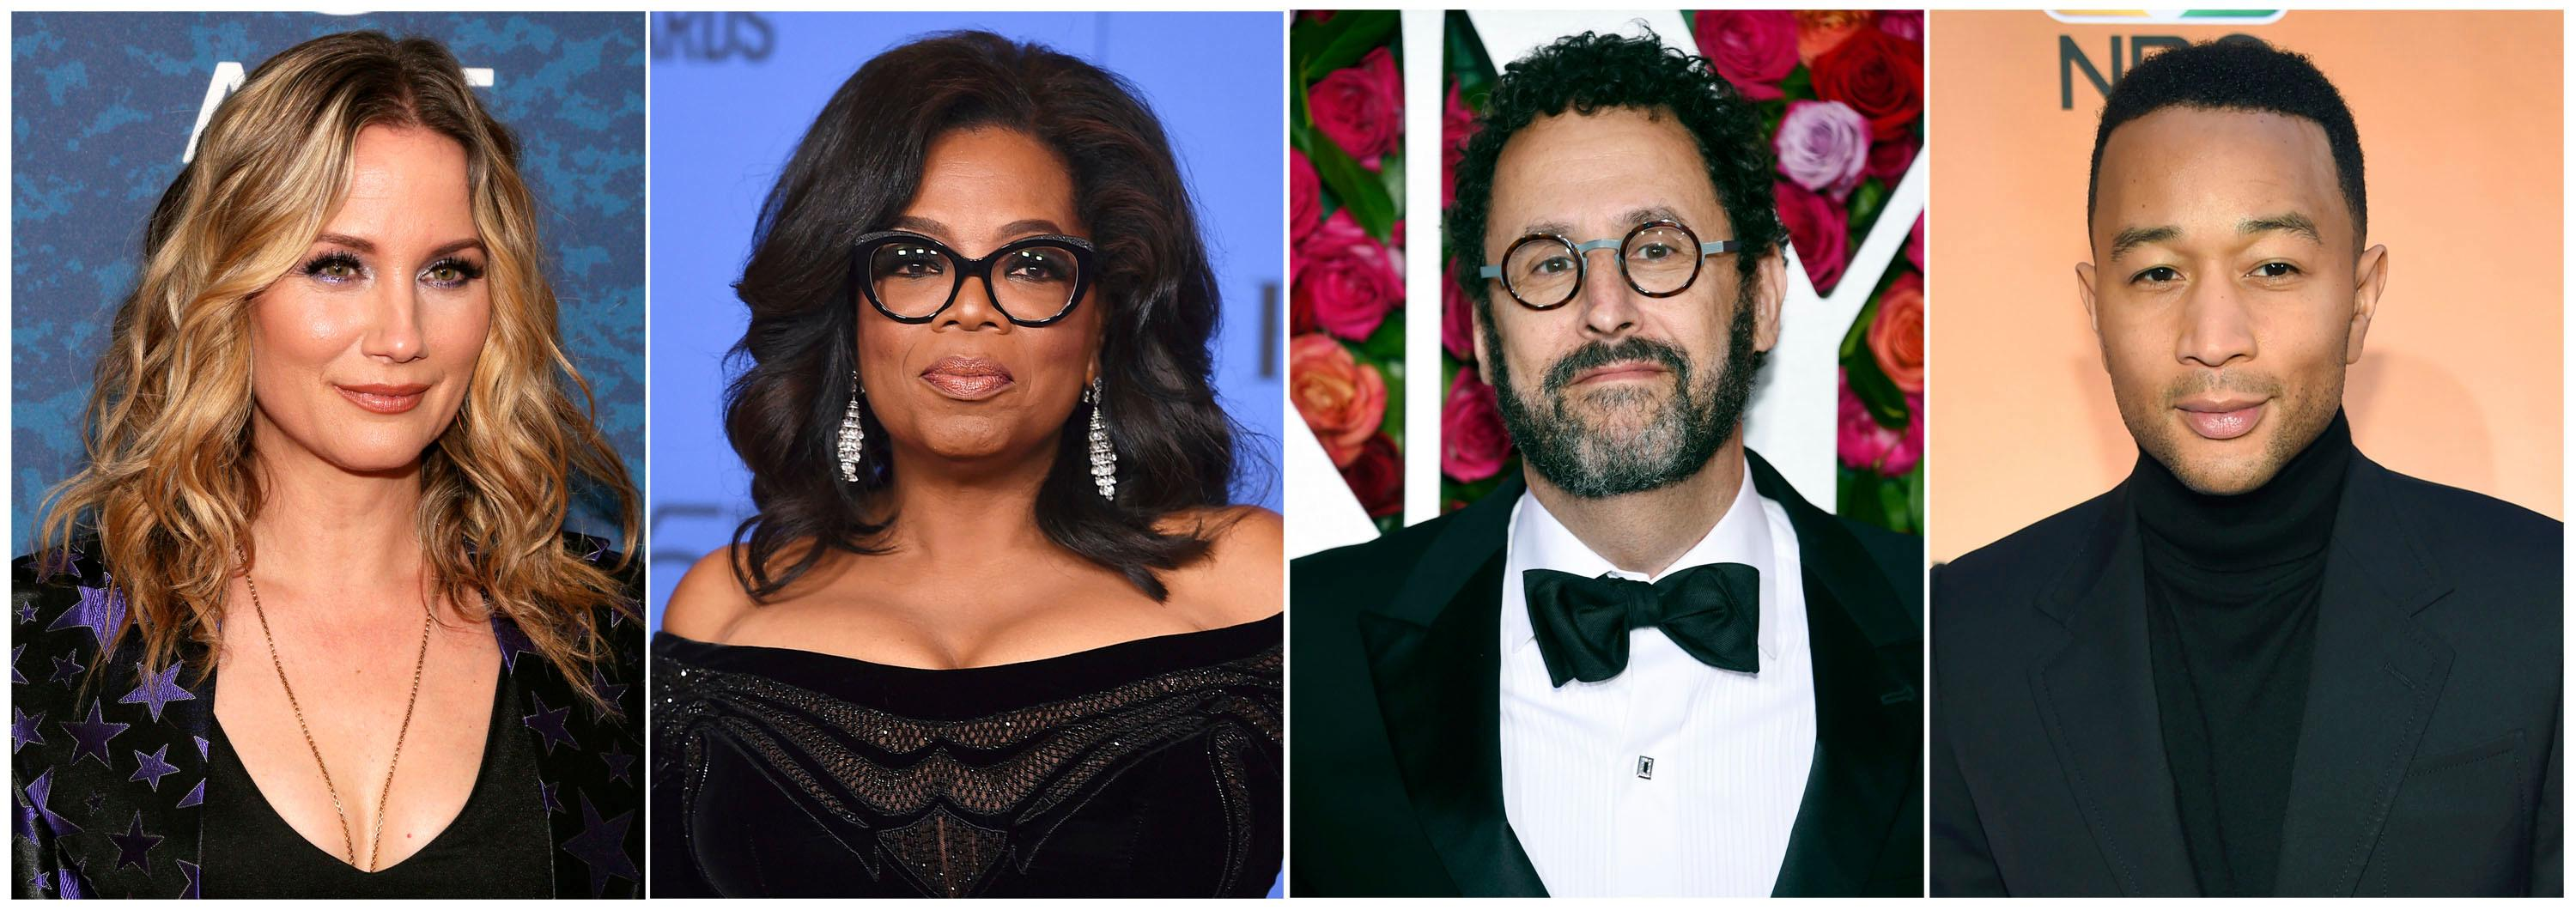 This combination photo shows, from left, country singer Jennifer Nettles, media mogul Oprah Winfrey, playwright and singer John Legend, who are among some of the celebrities speaking out about the U.S. administration's policy of separating families at border crossings. (AP Photo)